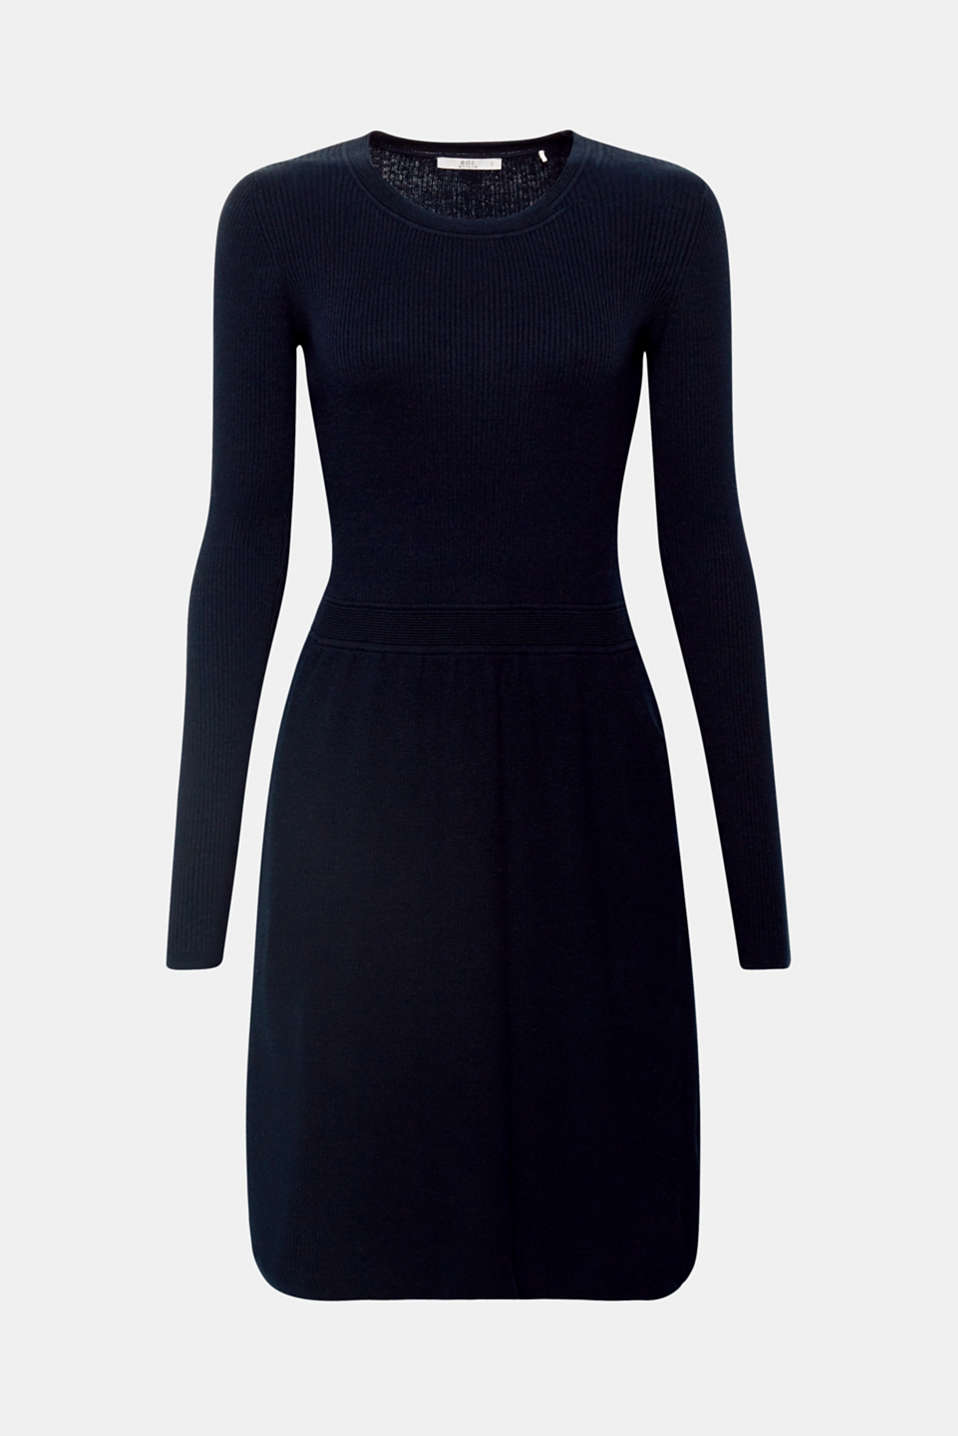 This flared, knit dress is the perfect, everyday fave that gets its unique look from the differently textured raised rib stitch and smooth stocking stitch.